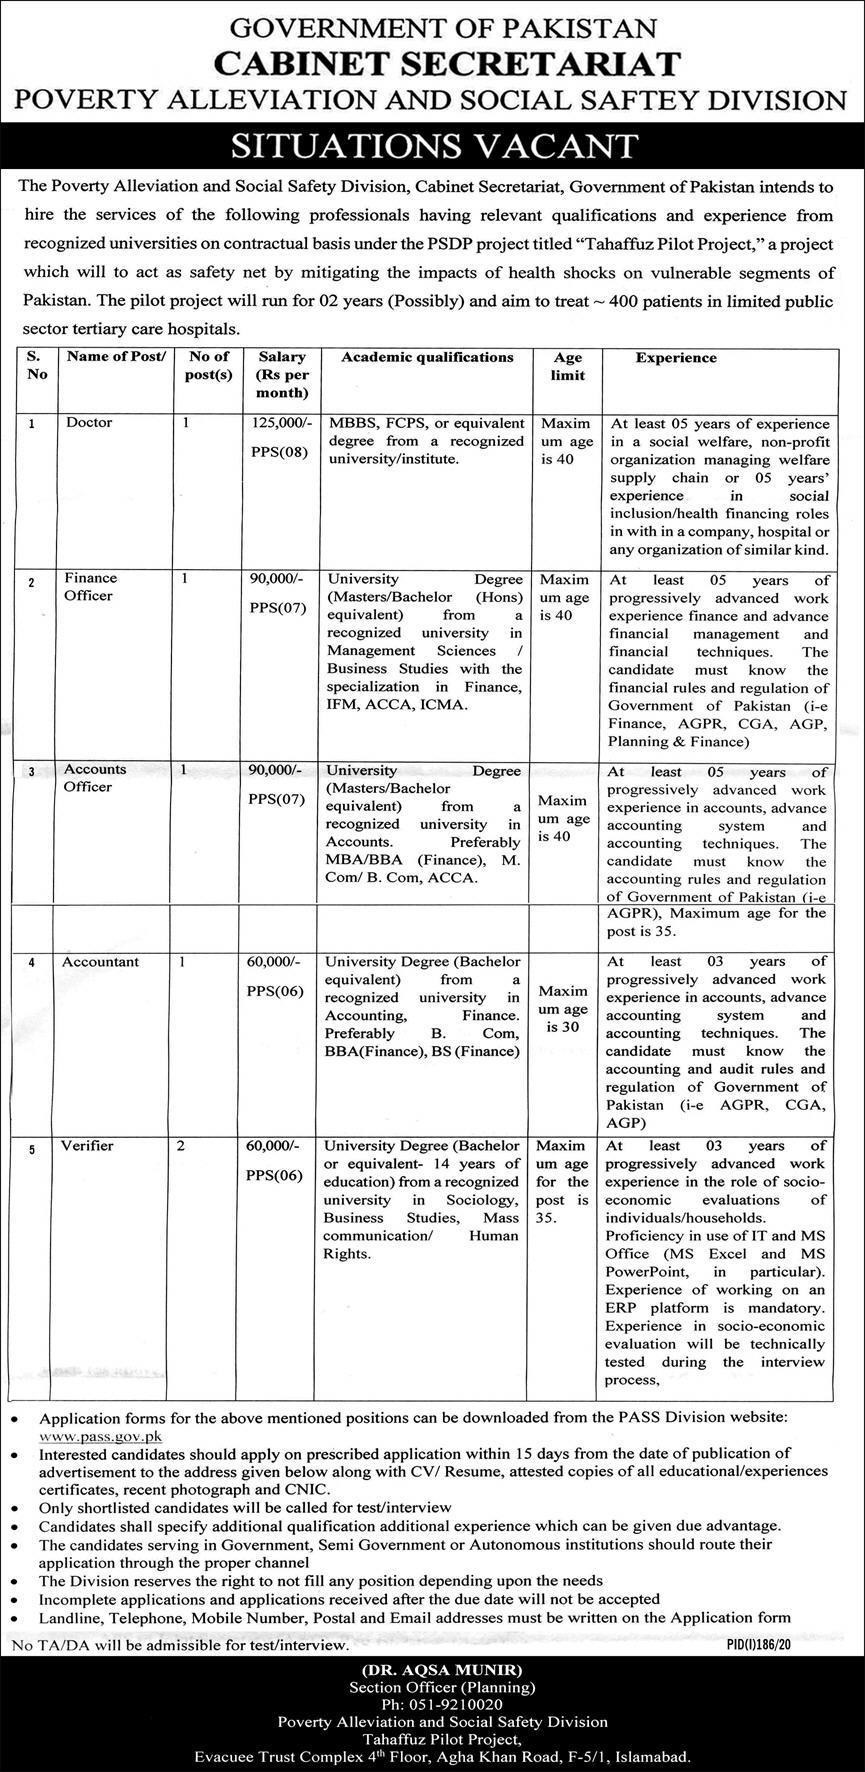 Government of Pakistan Cabinet Secretariat Jobs June 2020